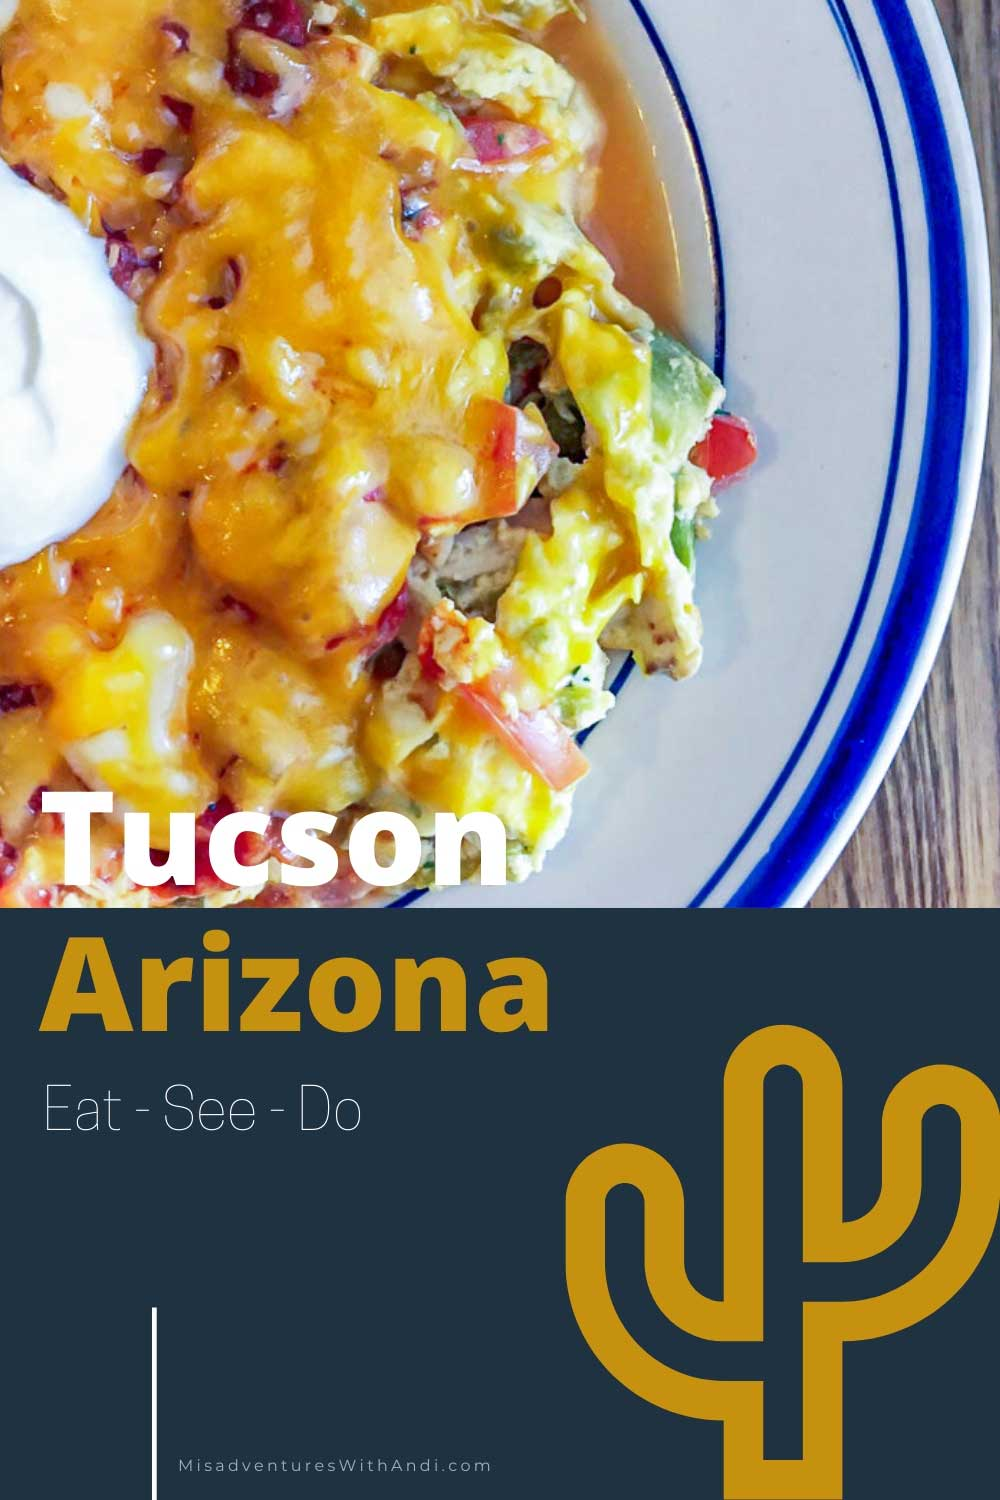 Visit Tucson Arizona - Tucson Travel Guide